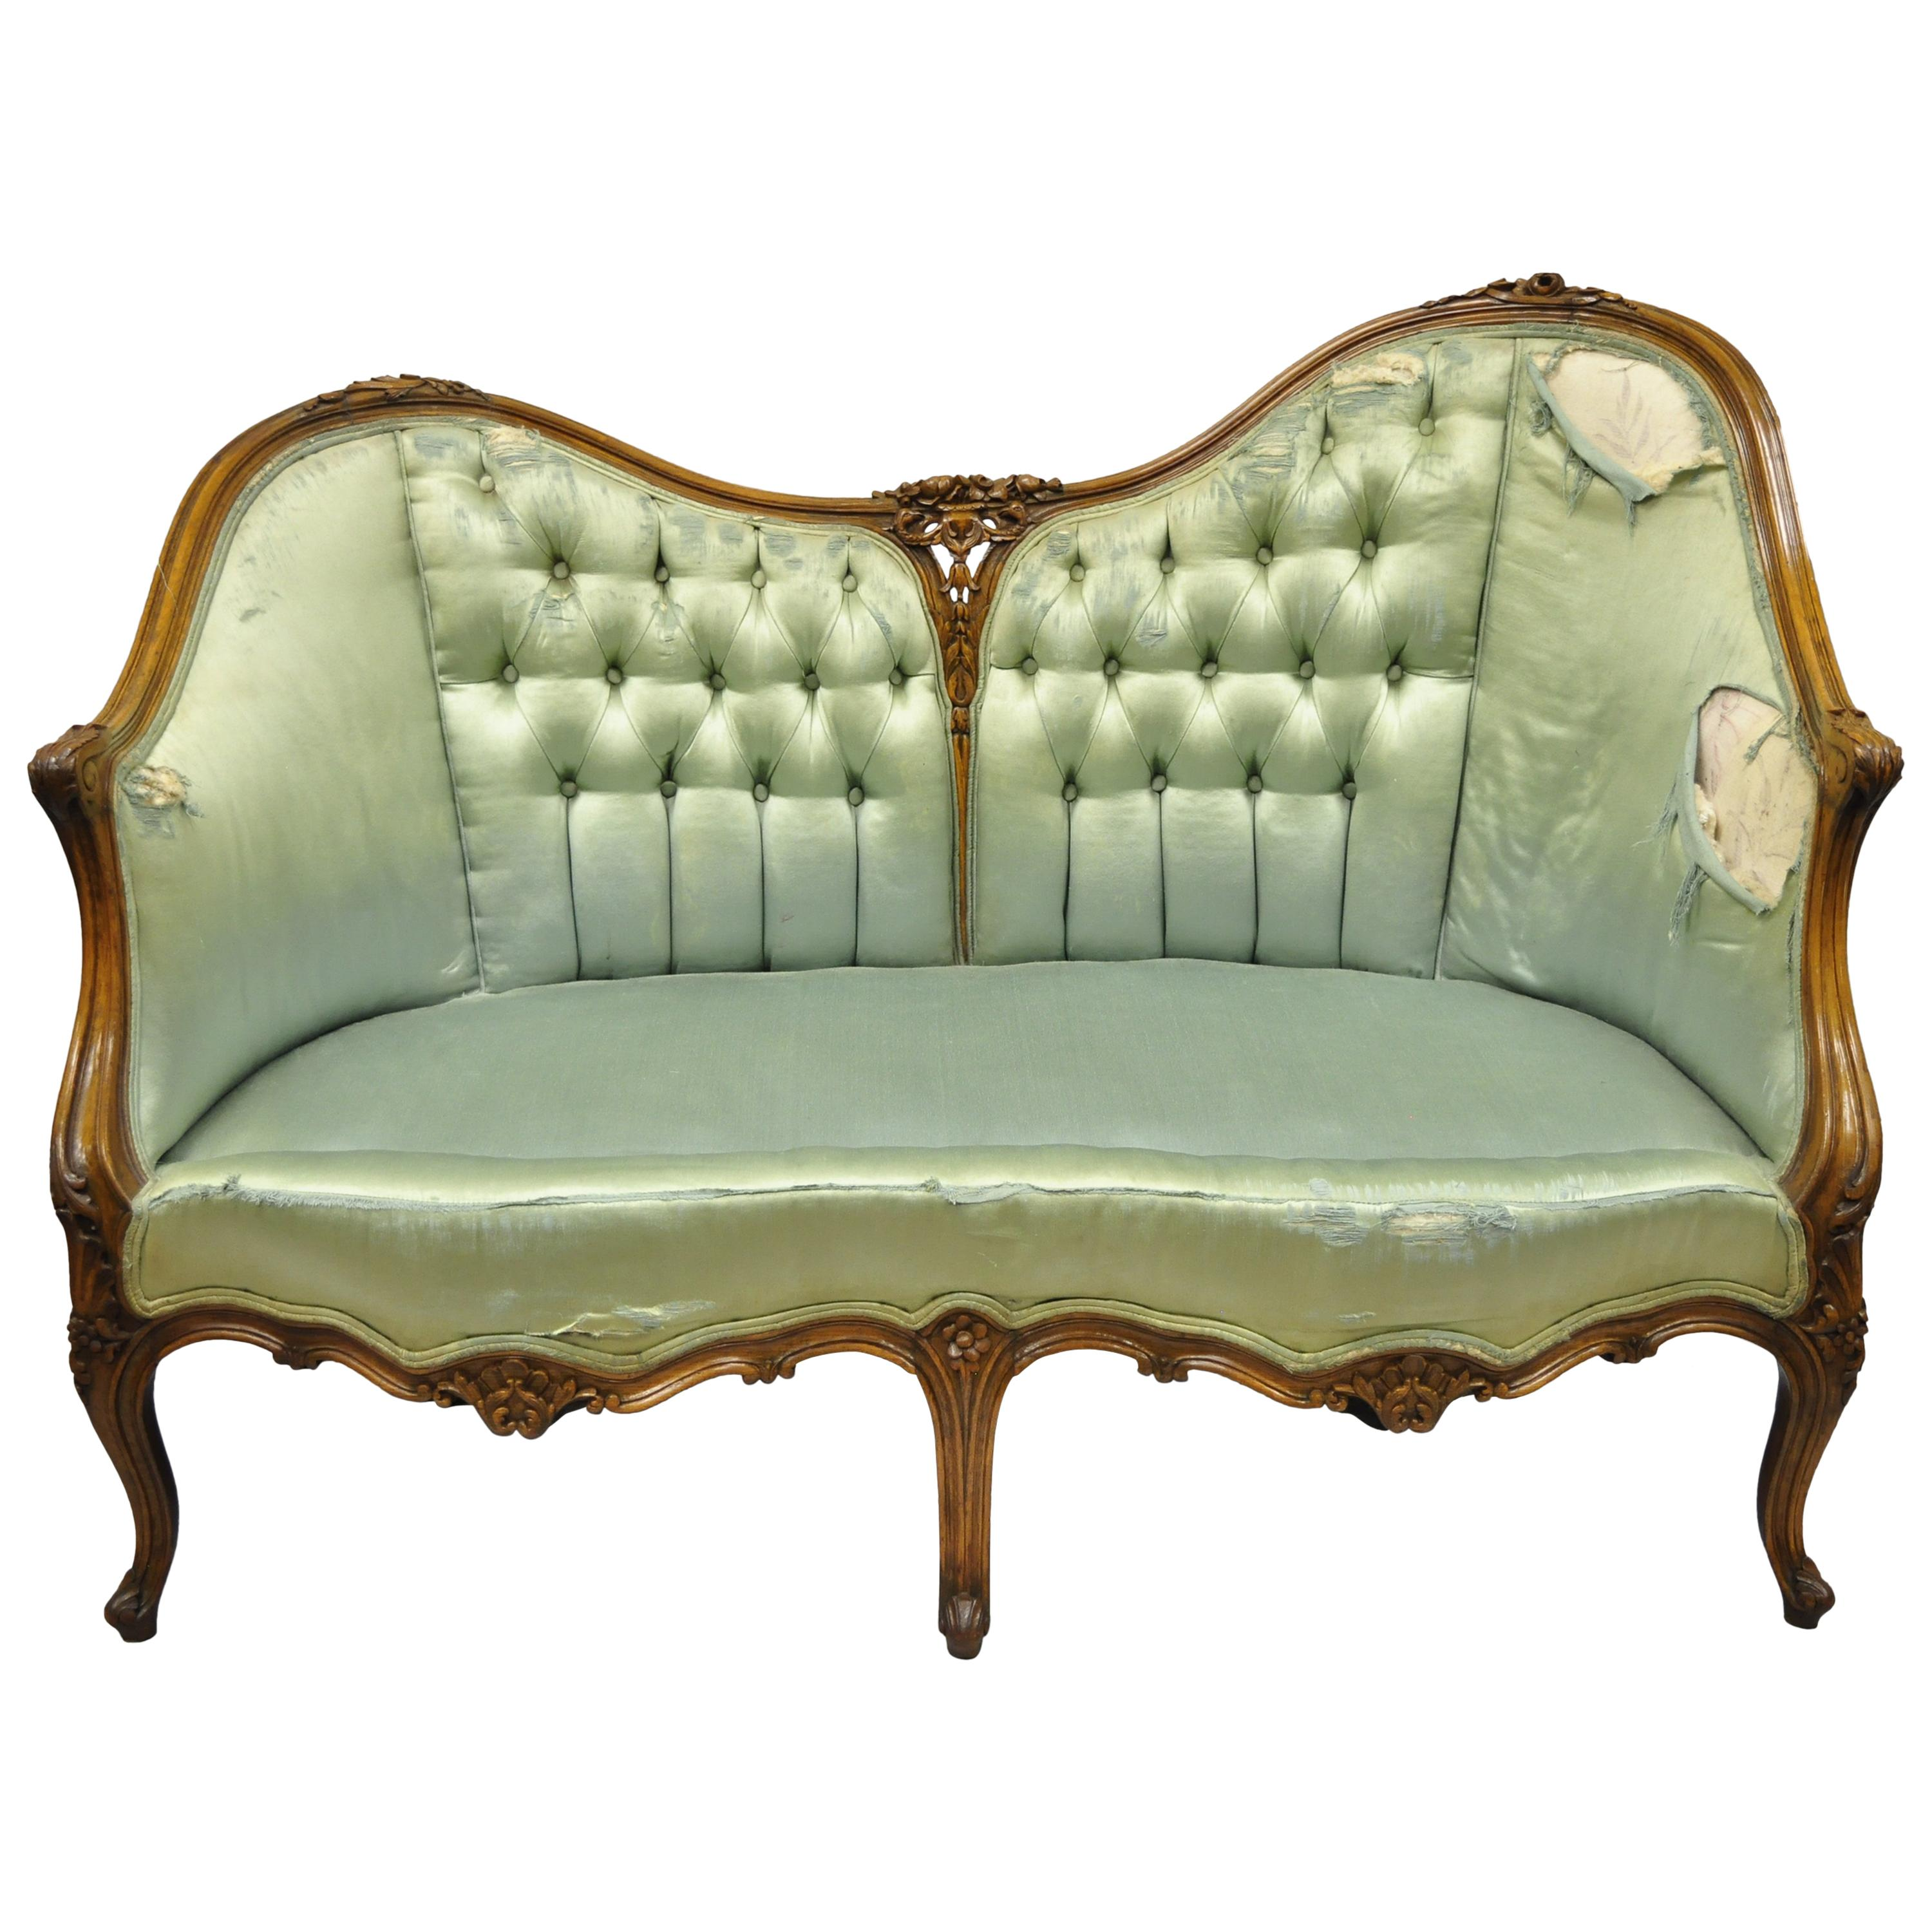 Settee Loveseat Antique French Louis Xv Style Carved Walnut Double Hump Back Settee Loveseat